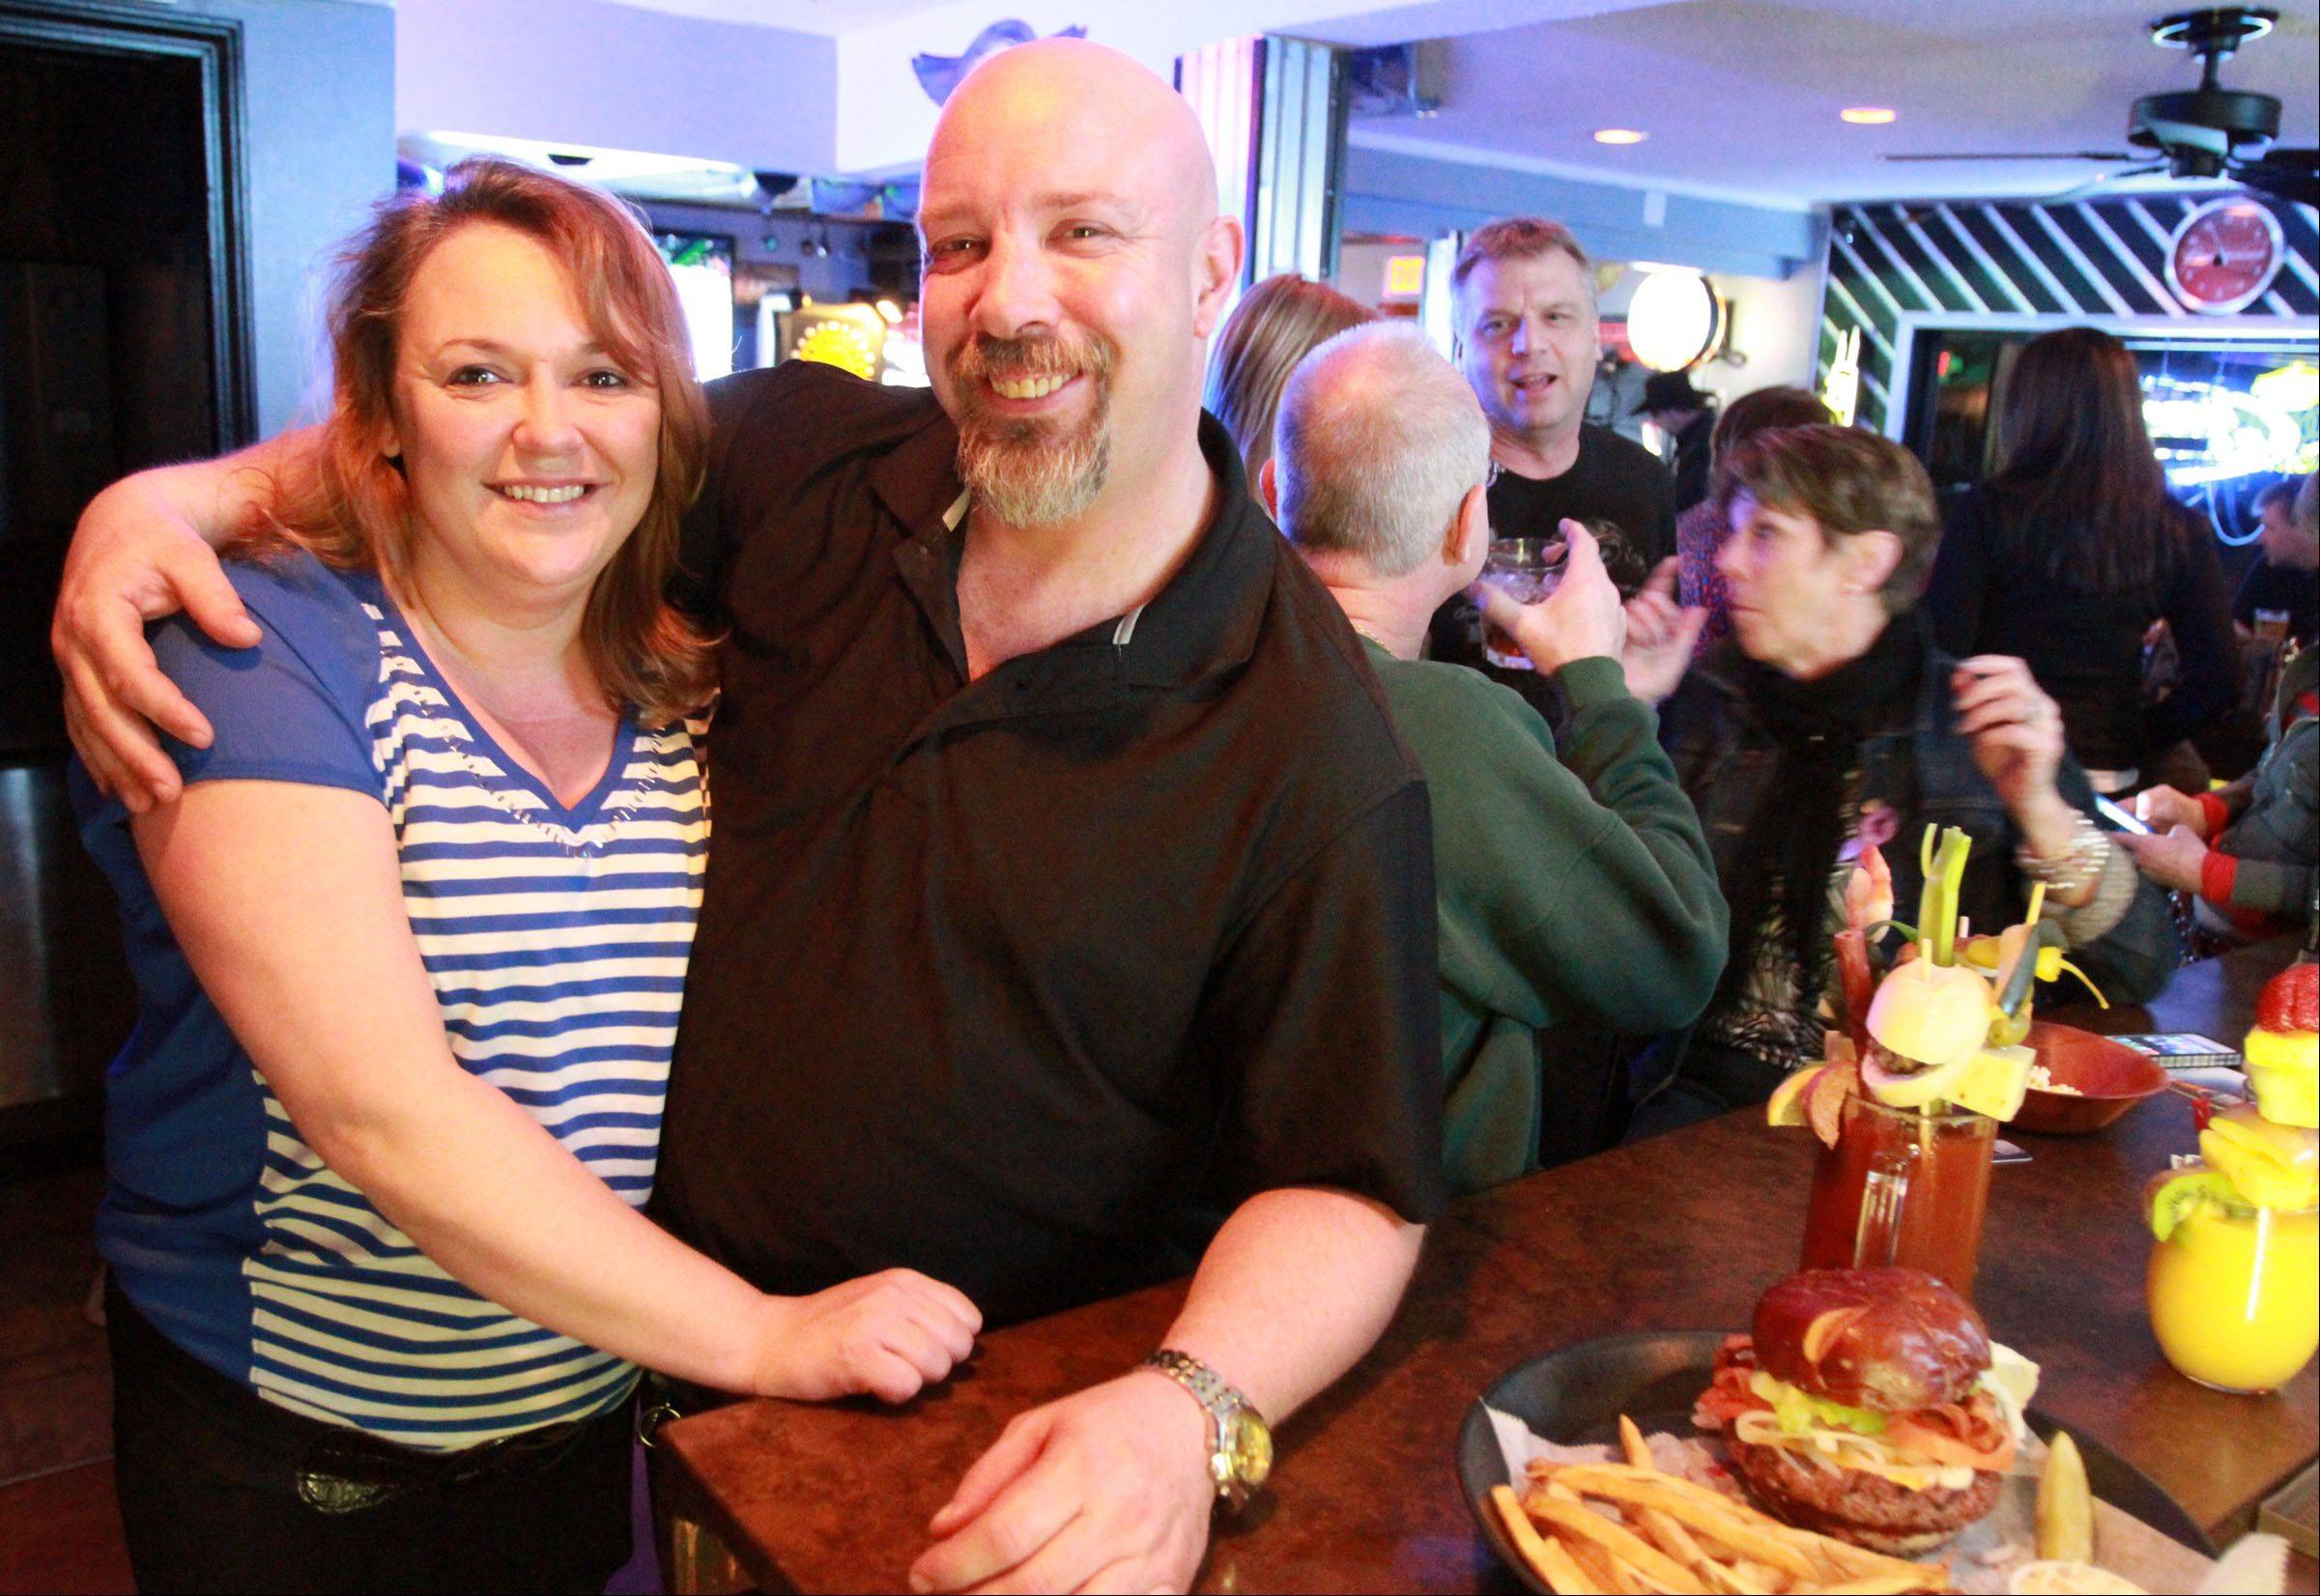 Owners Shawn and Virginia Alverson gutted Route 12 Bar & Grill in Fox Lake and reopened it as a neighborhood spot two years ago.